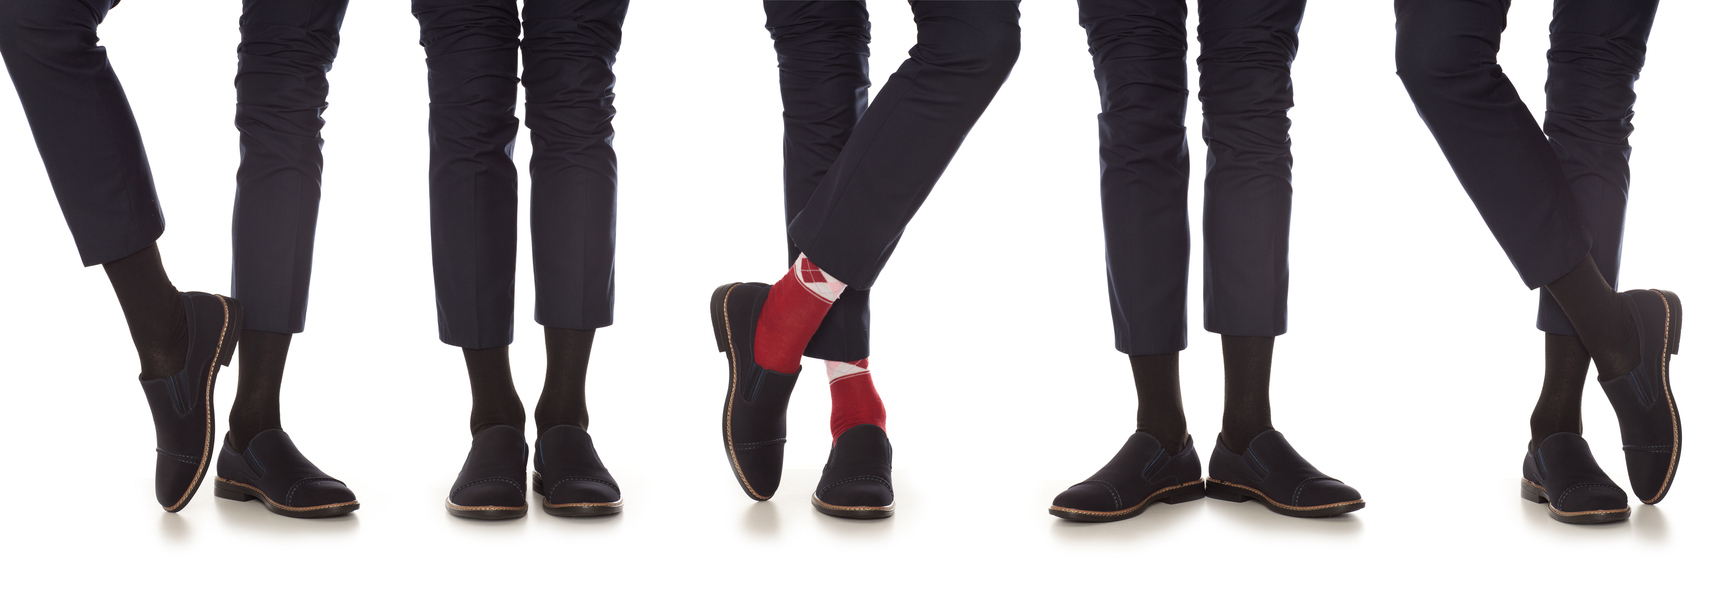 Row of men in black pants and socks except for one  wearing red socks.